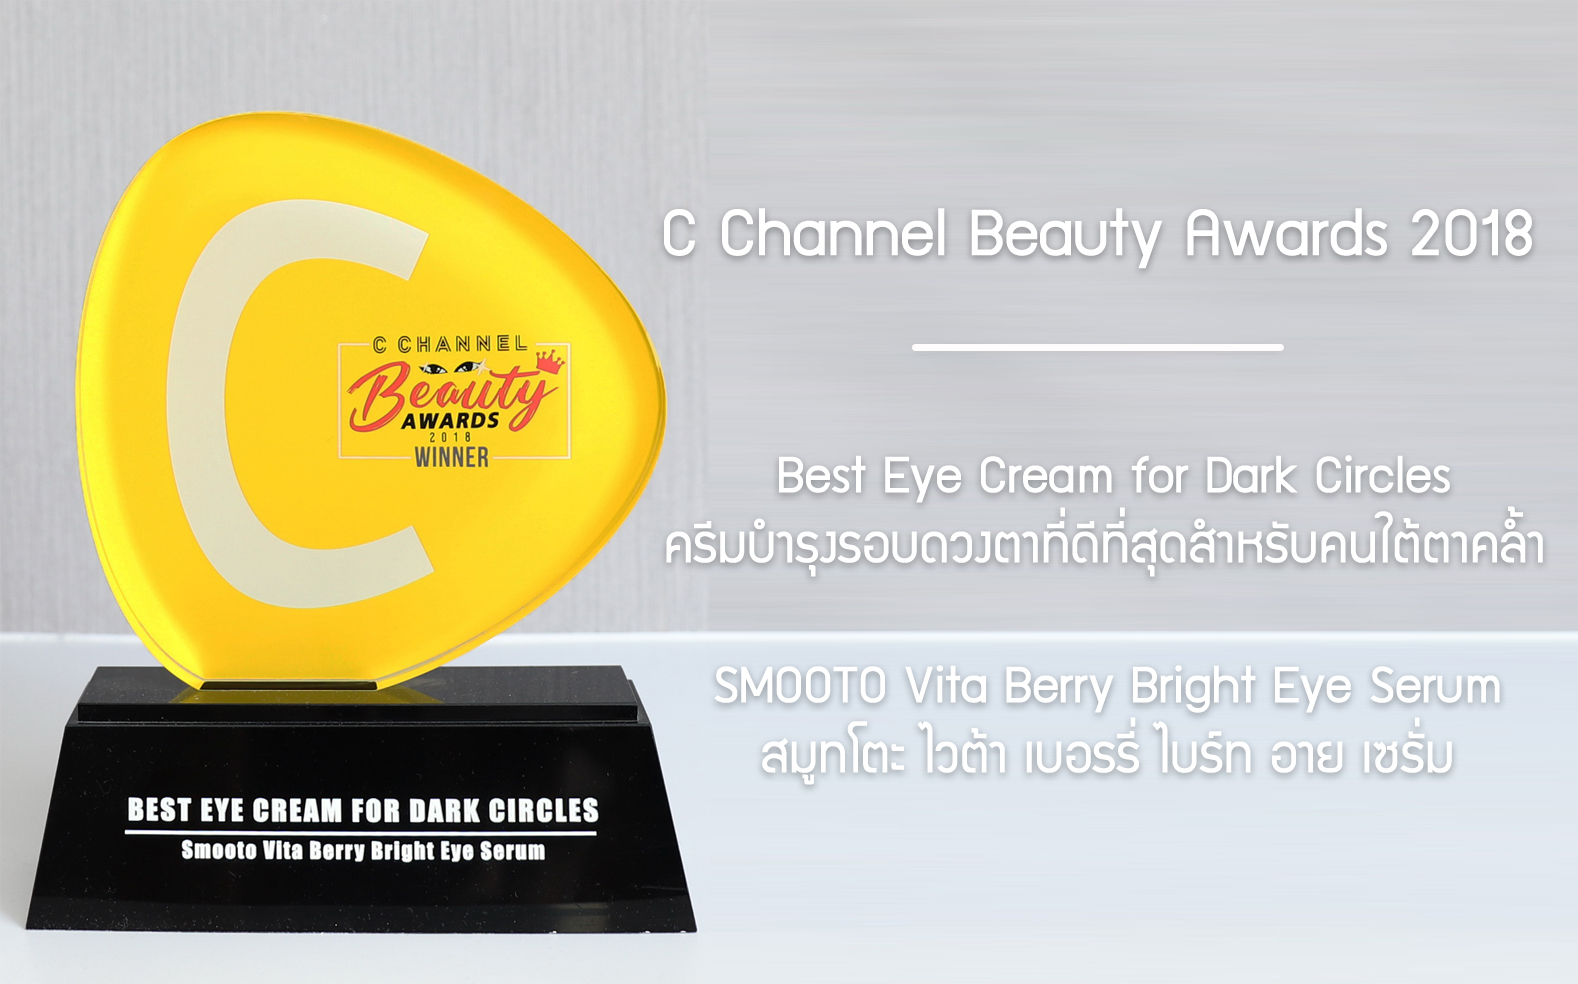 C Channel Beauty Awards 2018